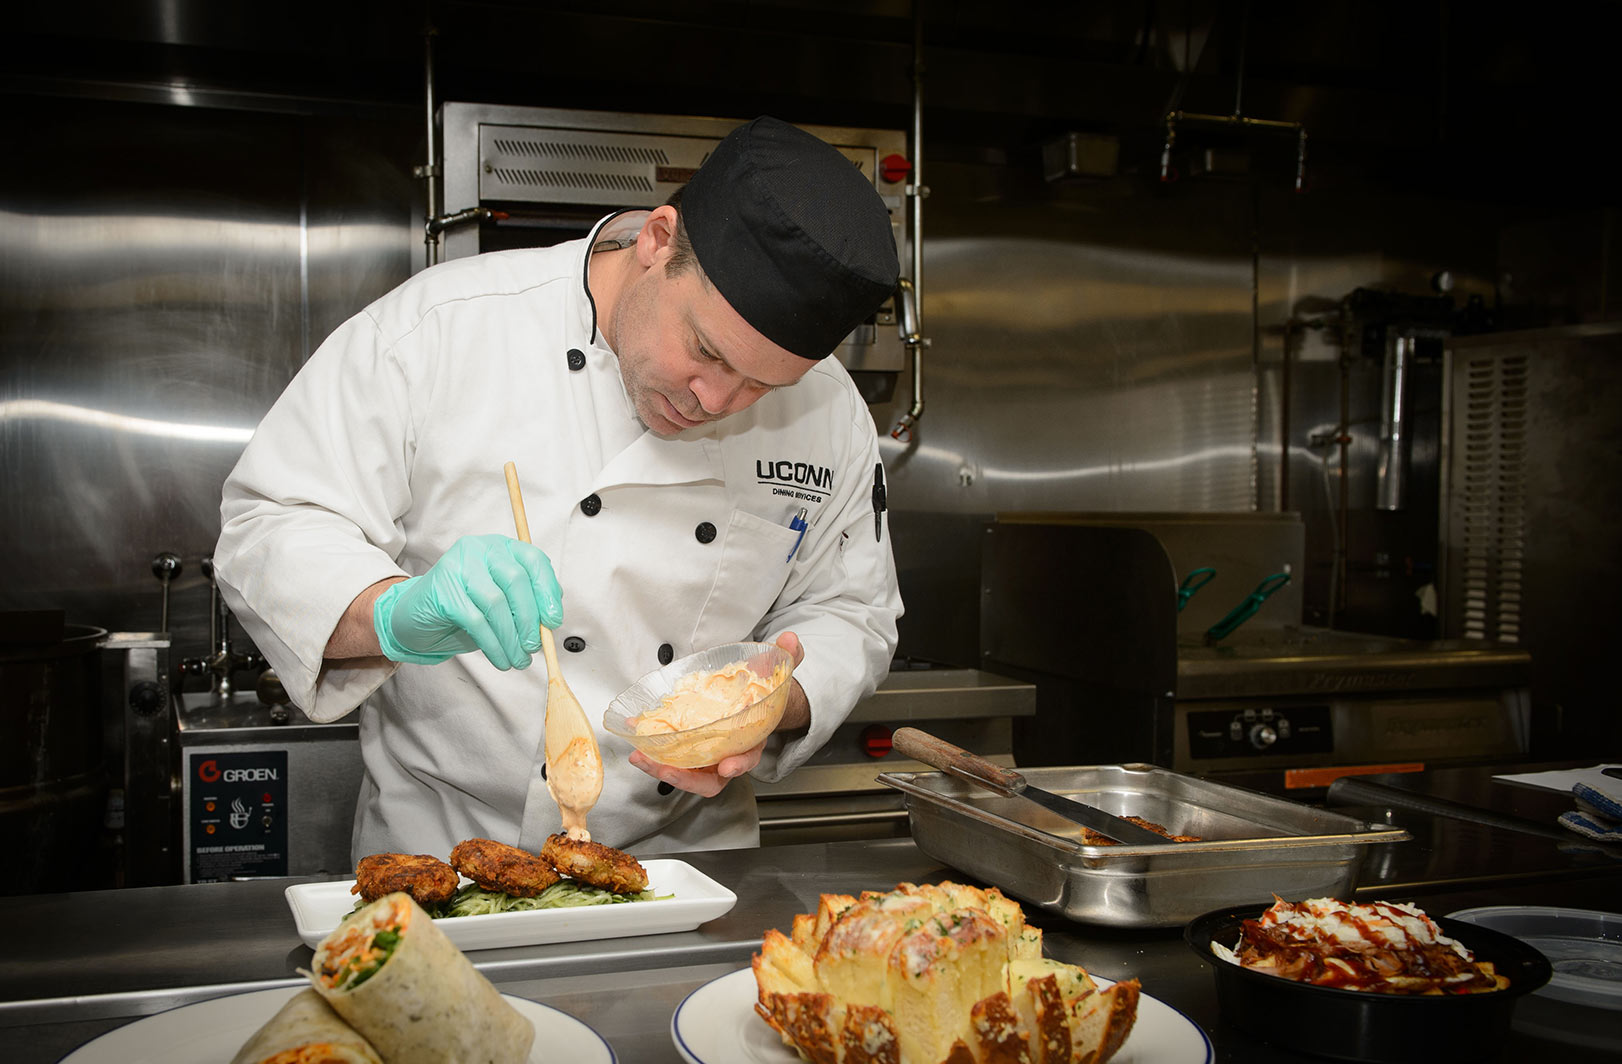 Rob Landolphi prepares vegan crab cakes at the Dining Services test kitchen in the Student Union.